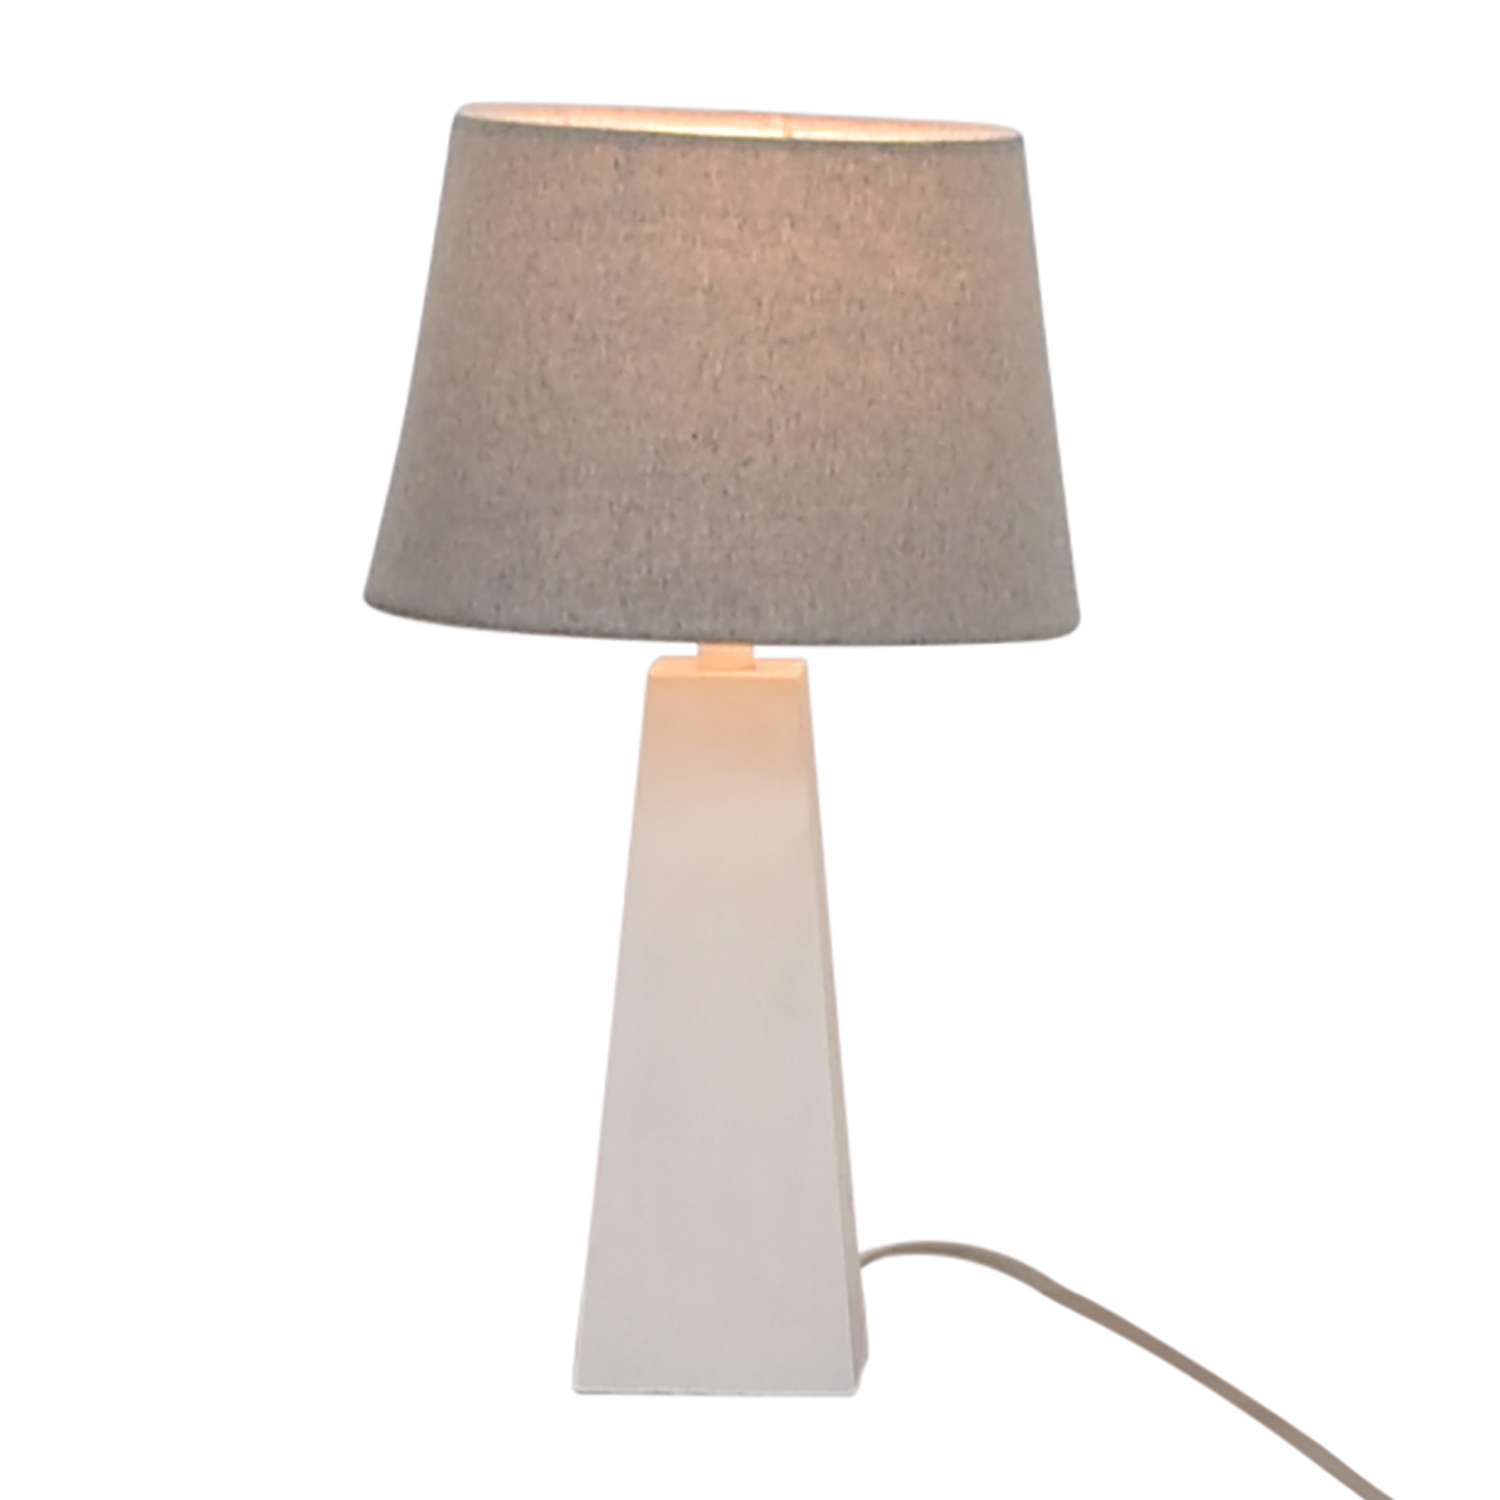 Target White Base with Silver Shade Lamp sale